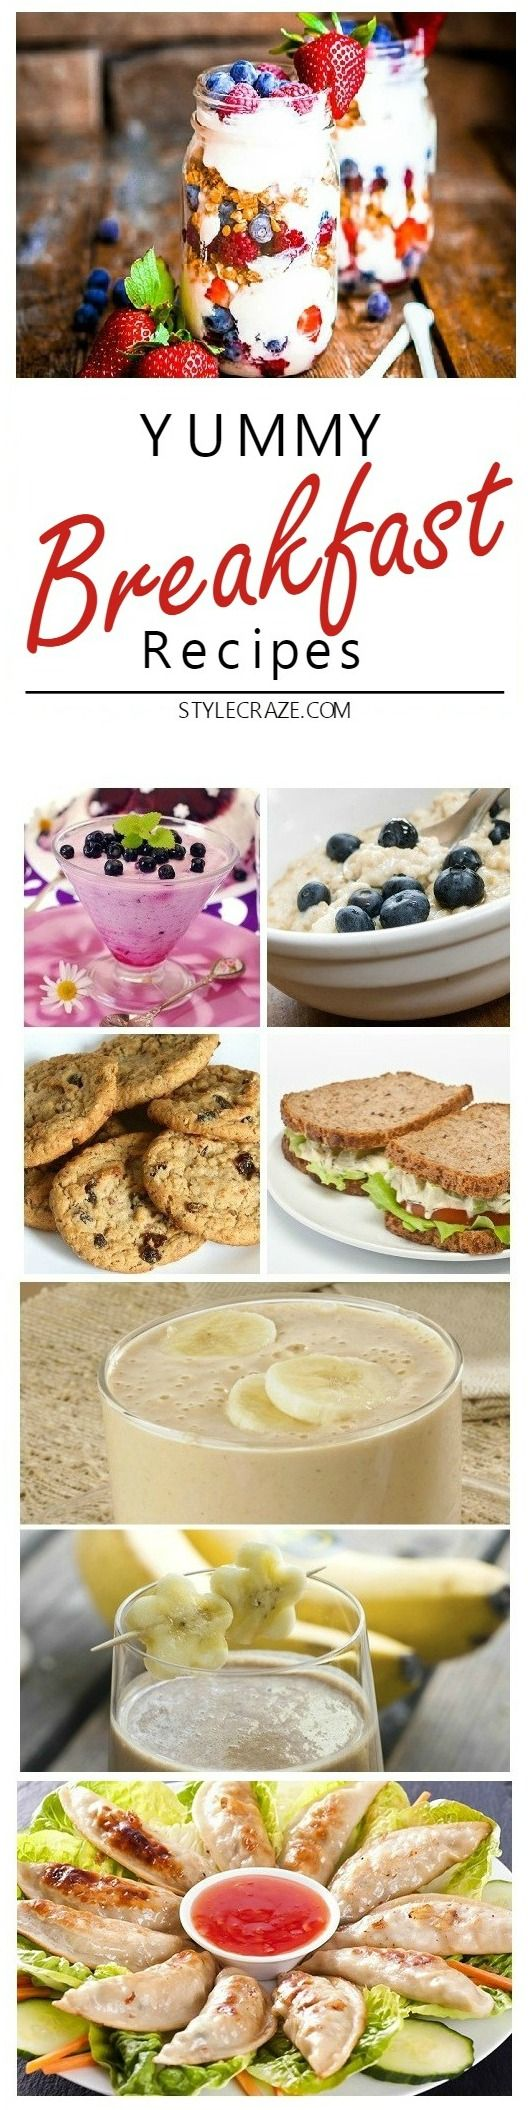 10 Yummy Breakfast Recipes To Try Out For Weight Gain : Opt for energy rich, nutrient dense foods and gain weight, the healthy way! what to eat in breakfast to gain weight?